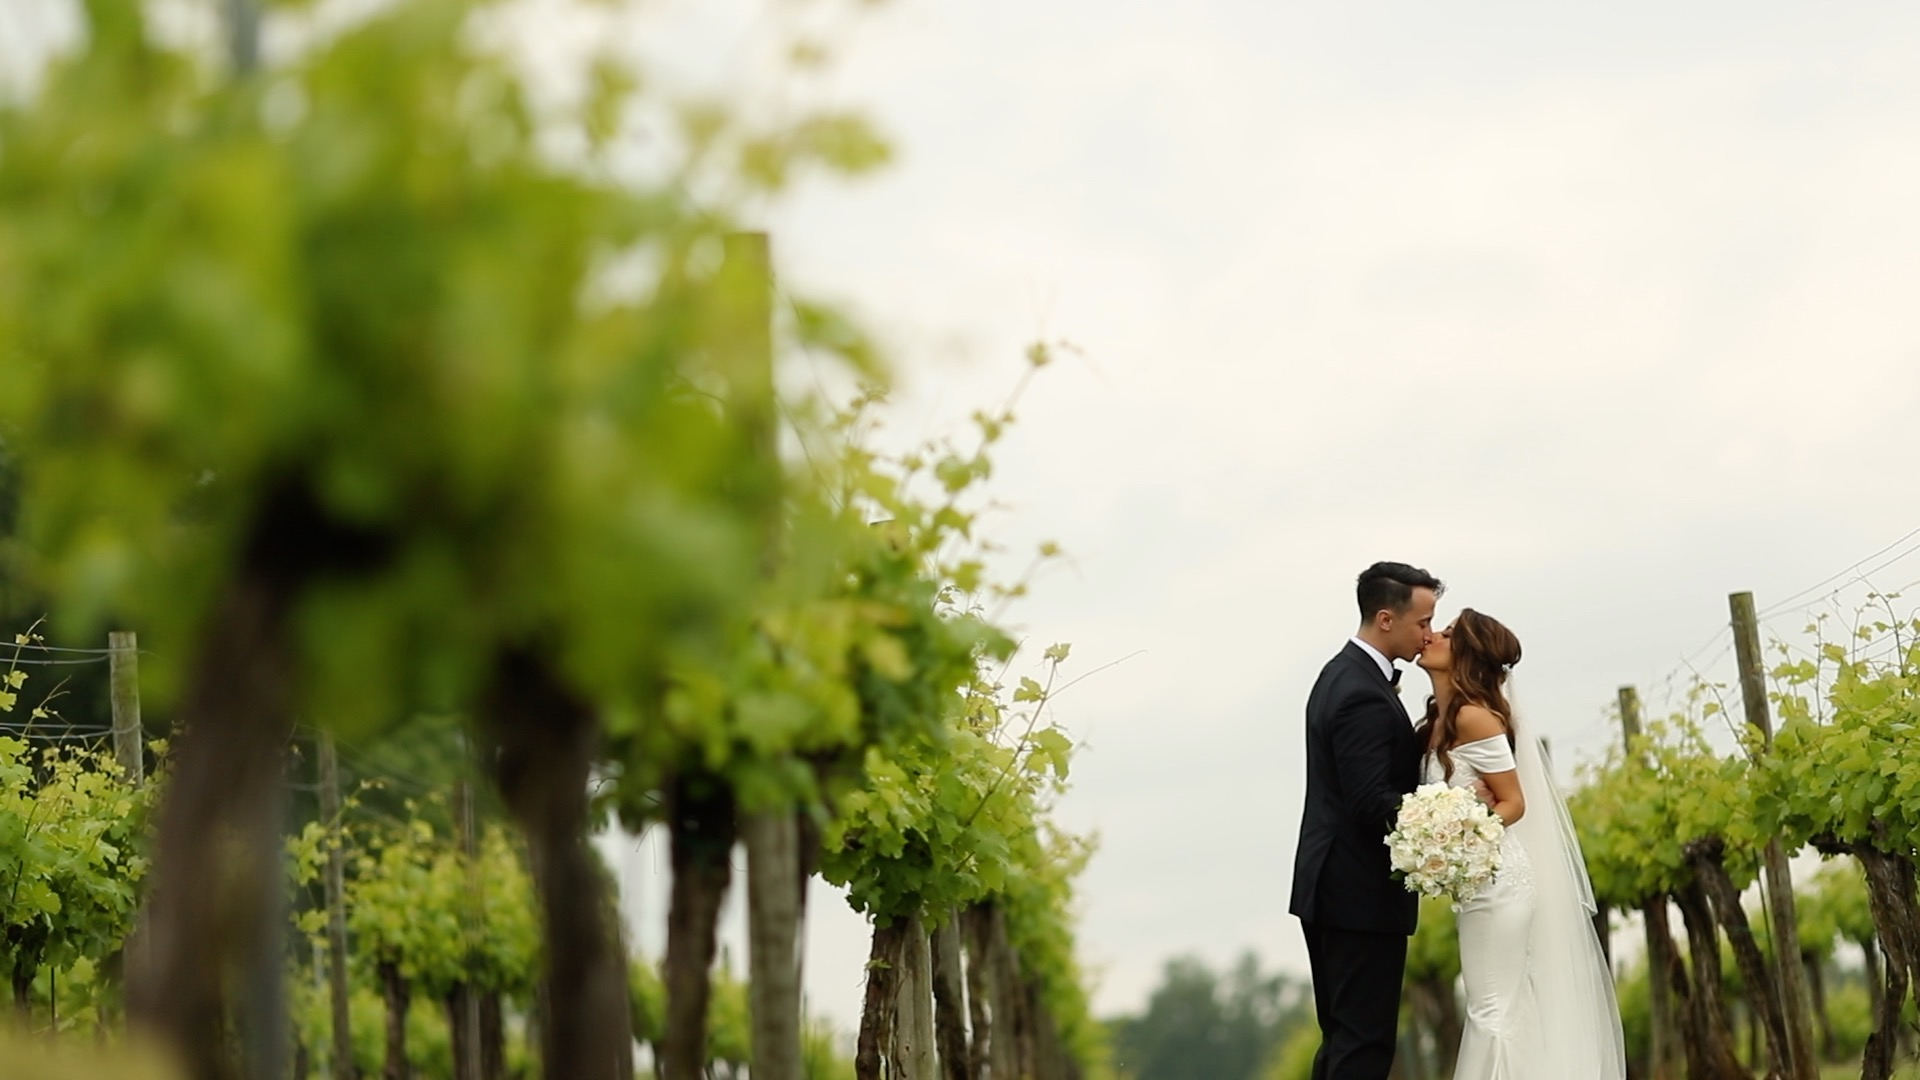 Armin + Eric | Keswick, Virginia | Keswick Vineyards